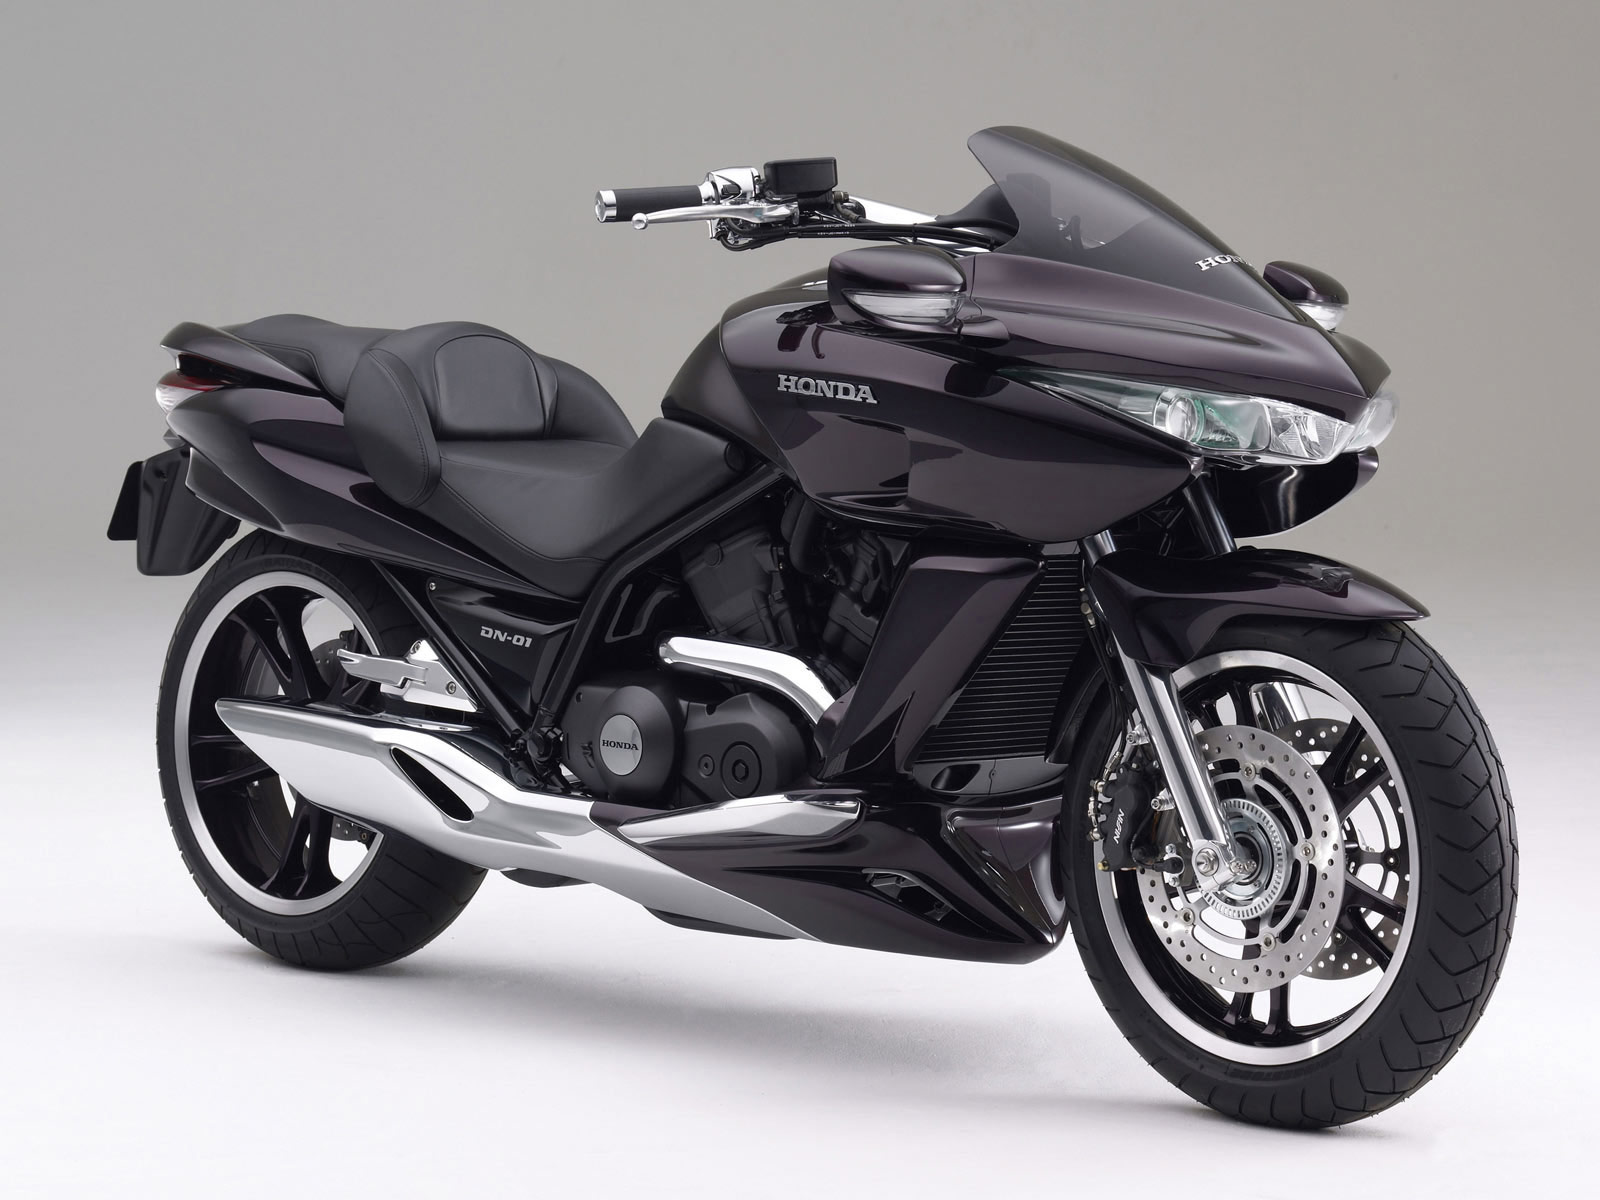 honda v4 concept widescreen bike wallpapers - Honda V4 Concept Widescreen Bike Wallpapers HD